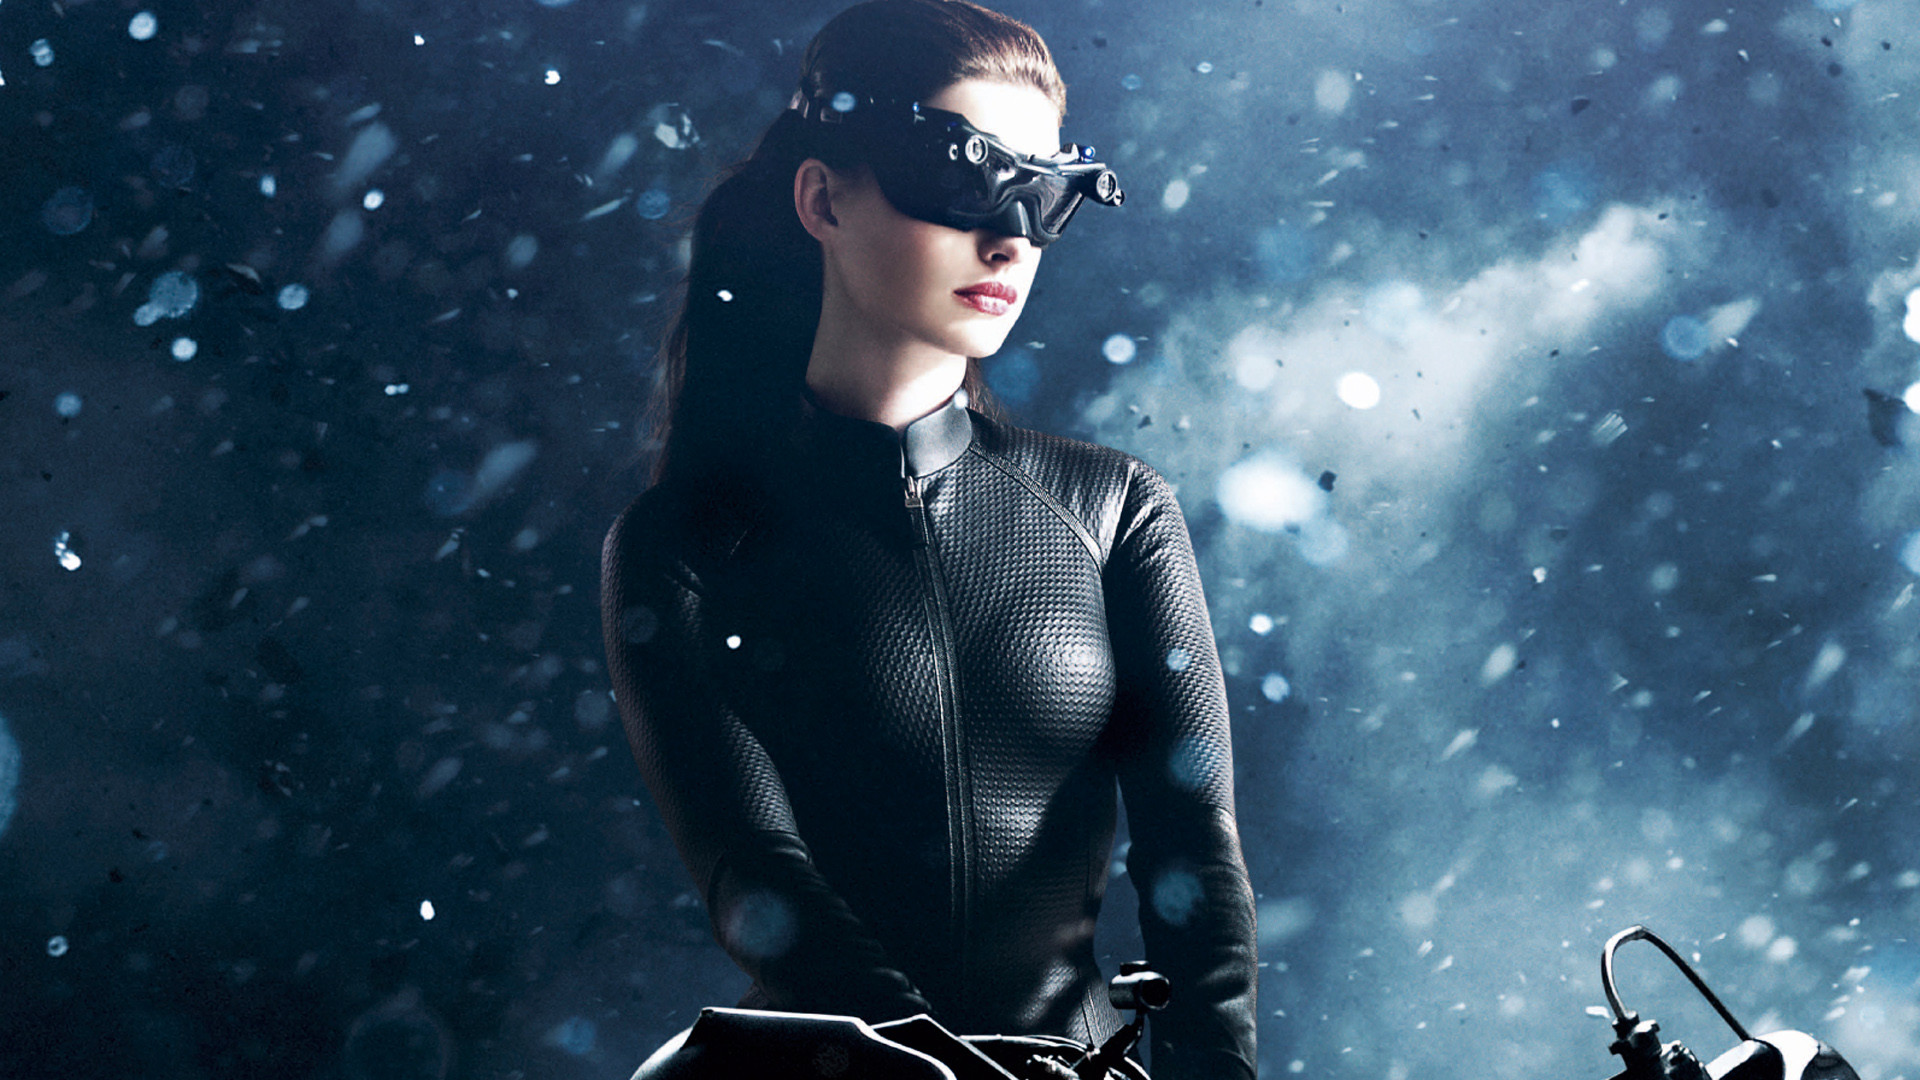 Anne Hathaway – Catwoman Wallpaper – 6